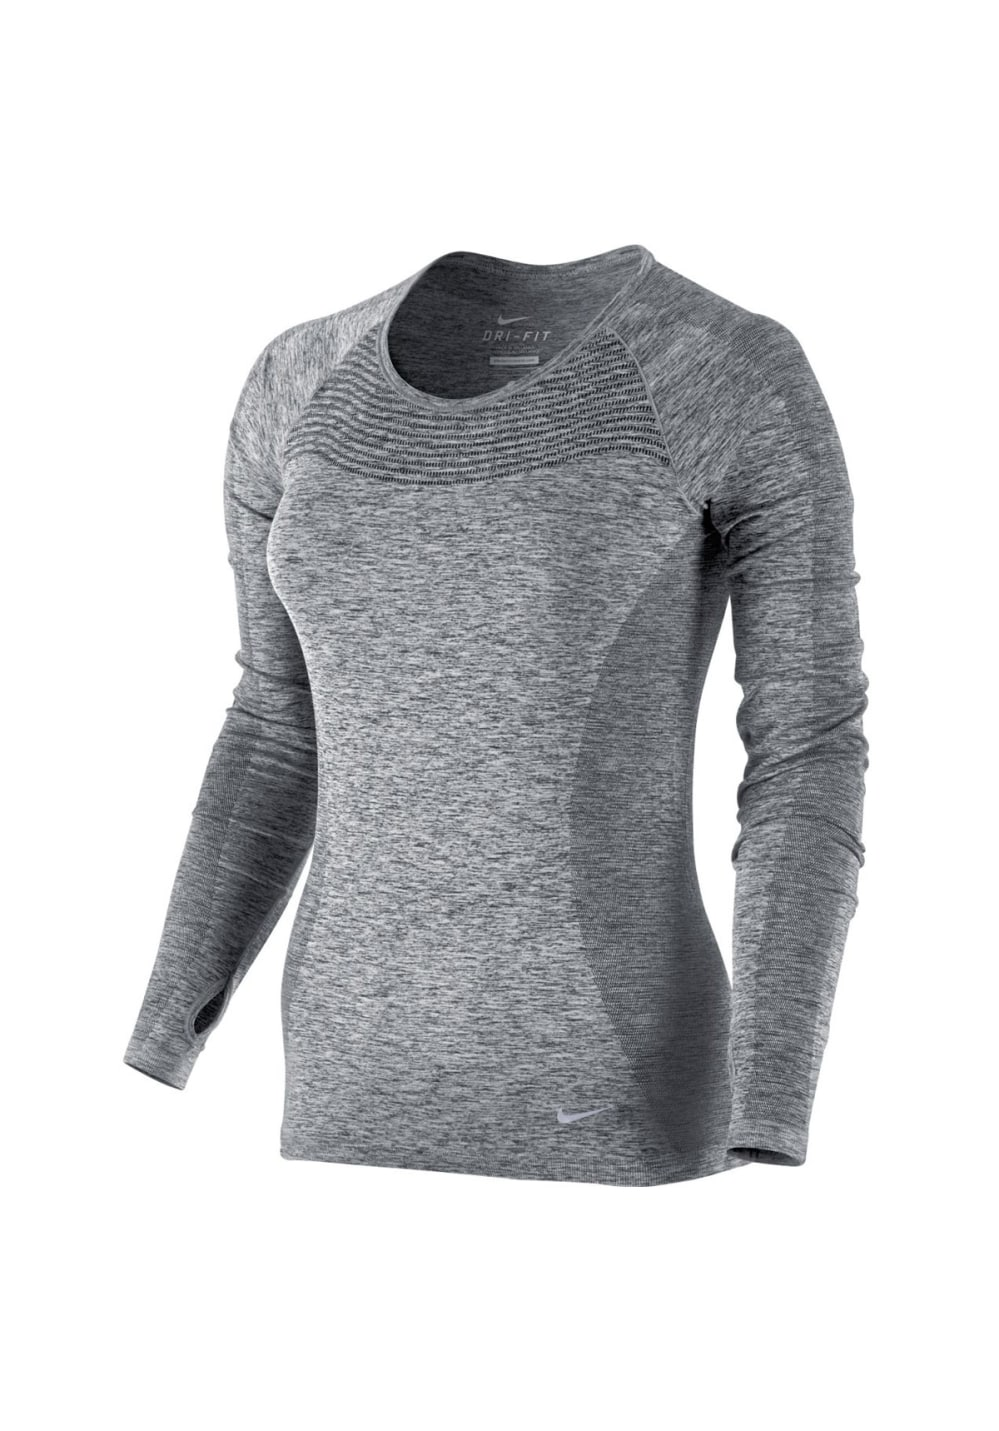 328570ed Next. Nike. Dri-Fit Knit Long Sleeve - Running tops for Women. €74.95. incl.